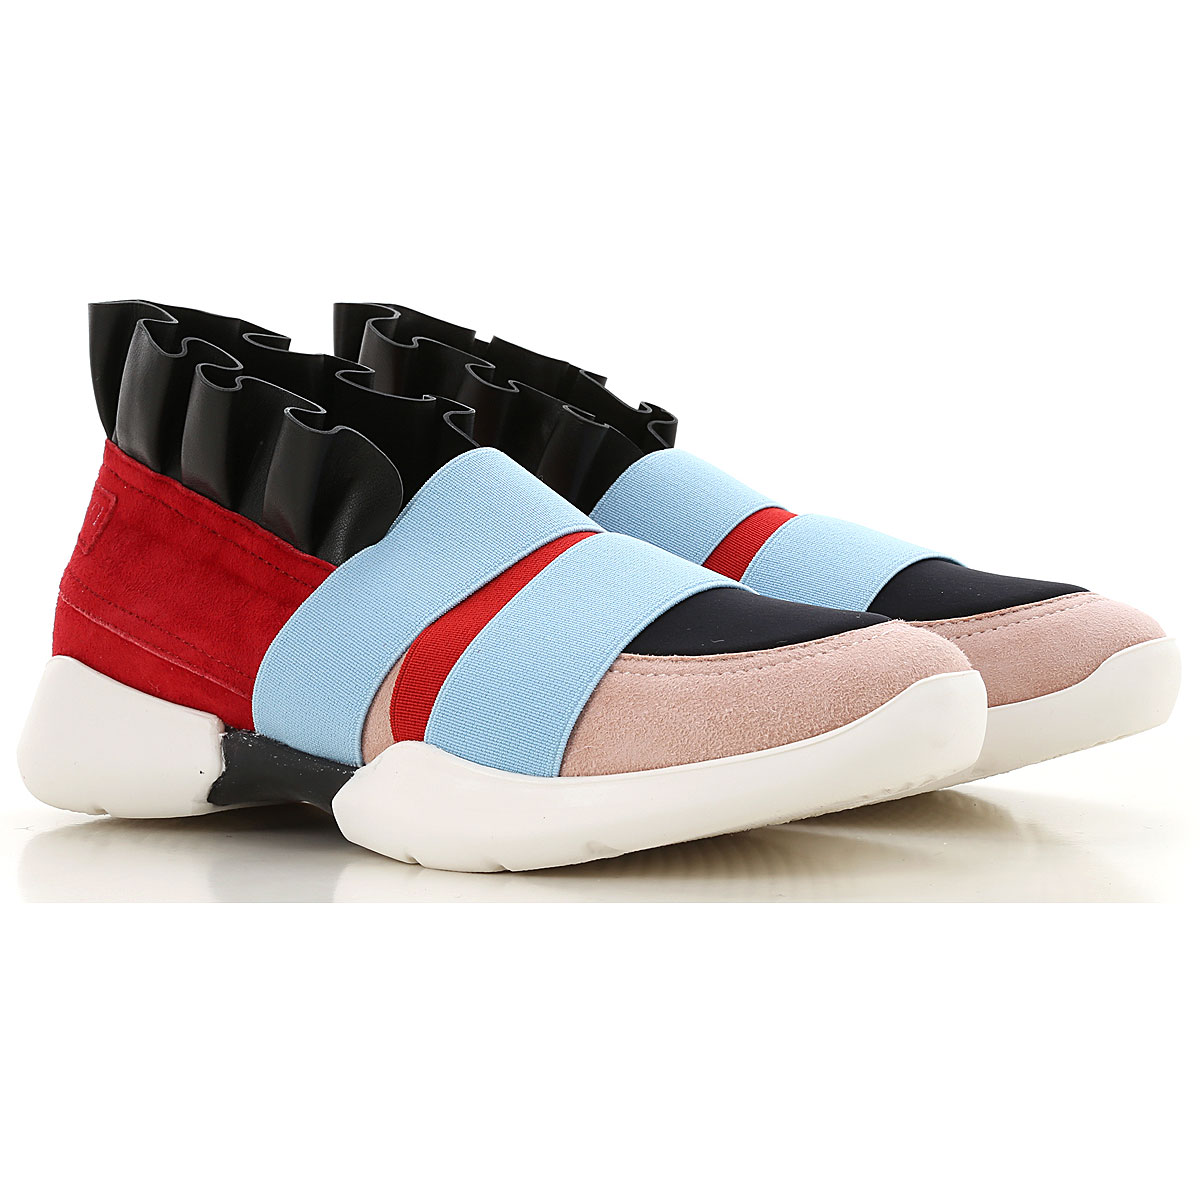 Image of Emilio Pucci Sneakers, Red, Calf Leather, 2017, 31 32 33 34 35